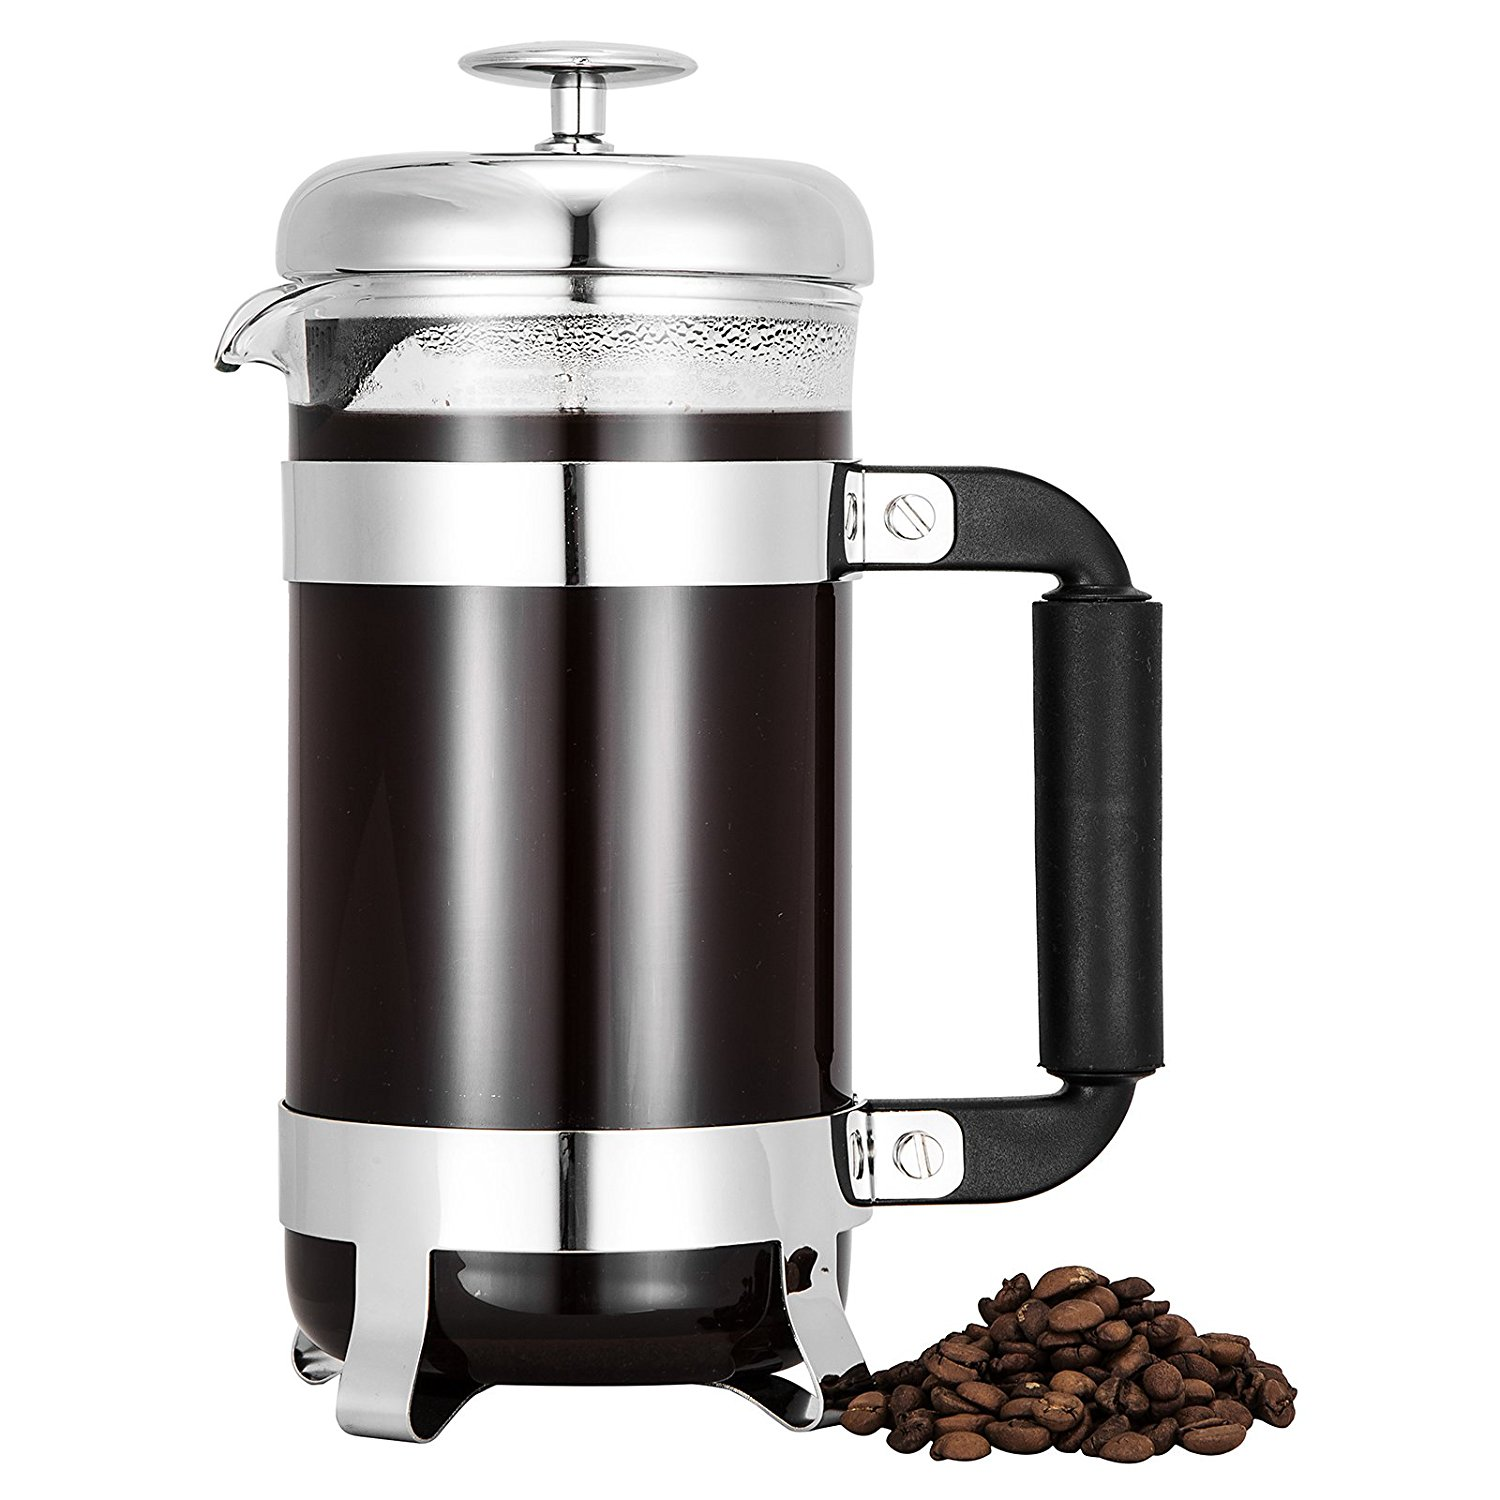 french press coffee maker coffee press best price review. Black Bedroom Furniture Sets. Home Design Ideas